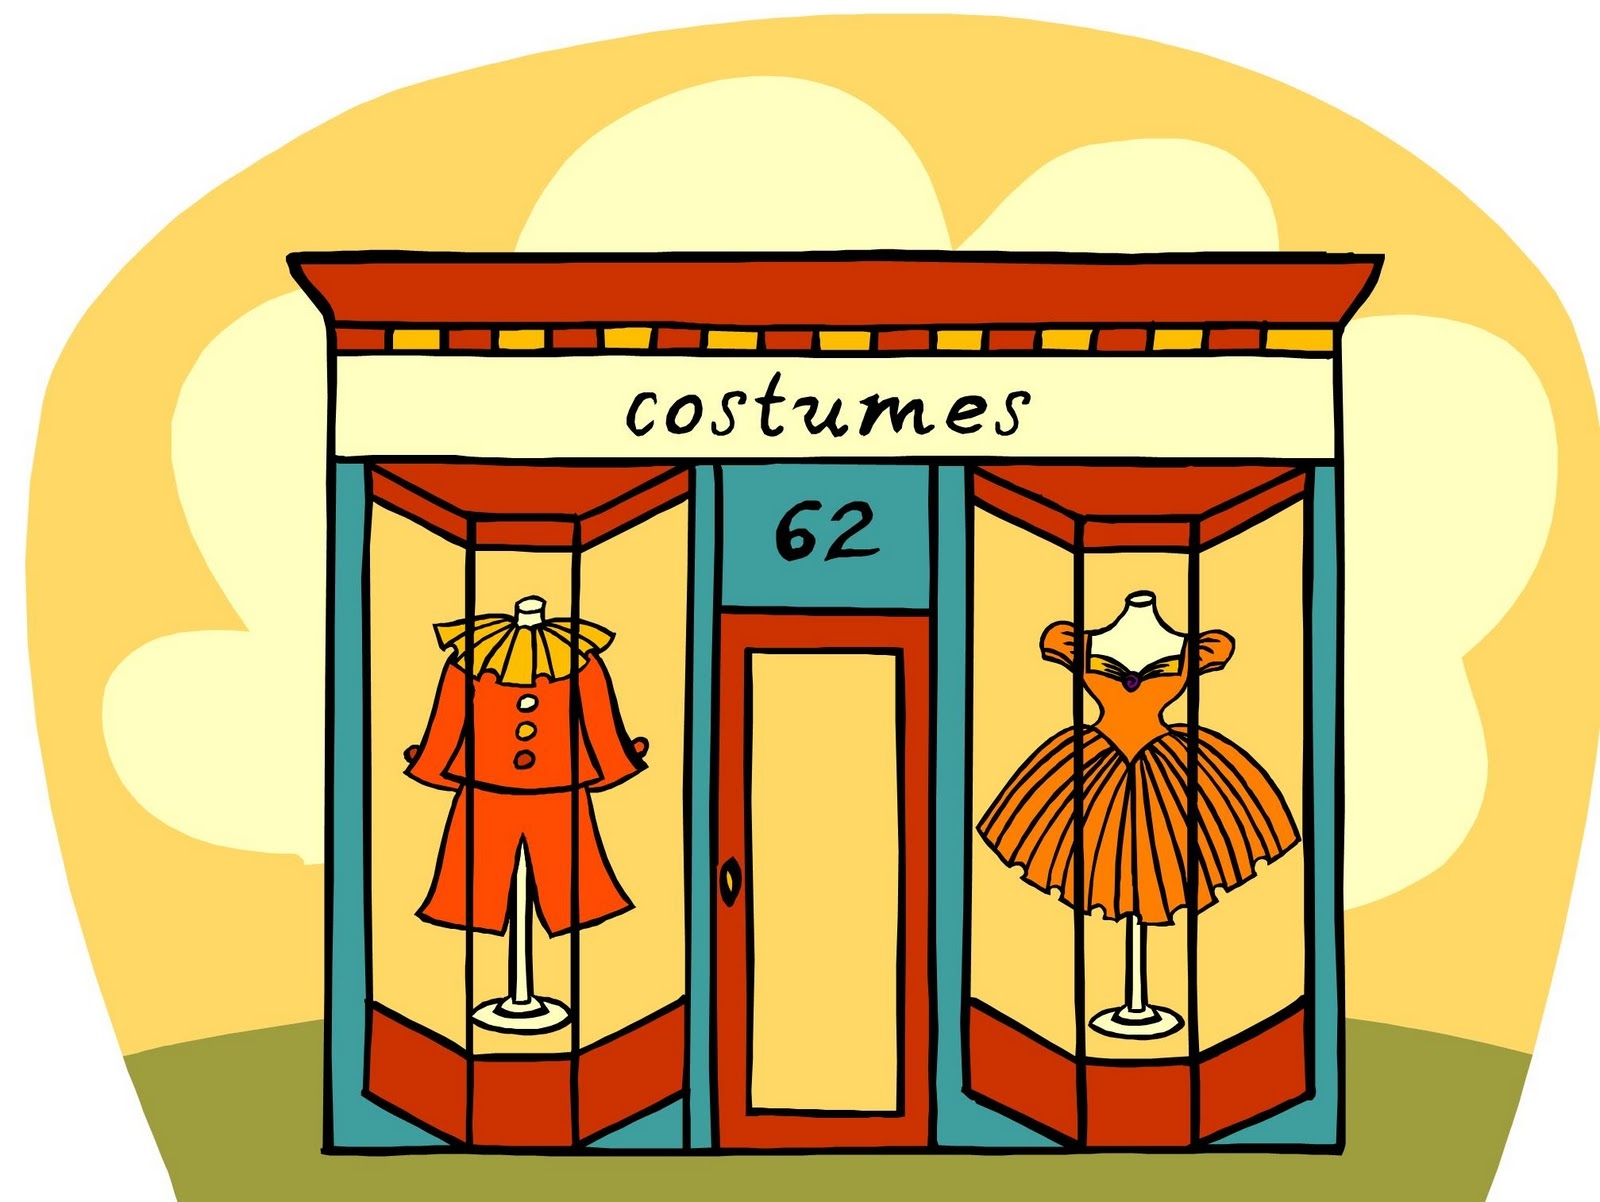 Bakery storefront clipart clip Free Bakery Storefront, Download Free Clip Art, Free Clip Art on ... clip